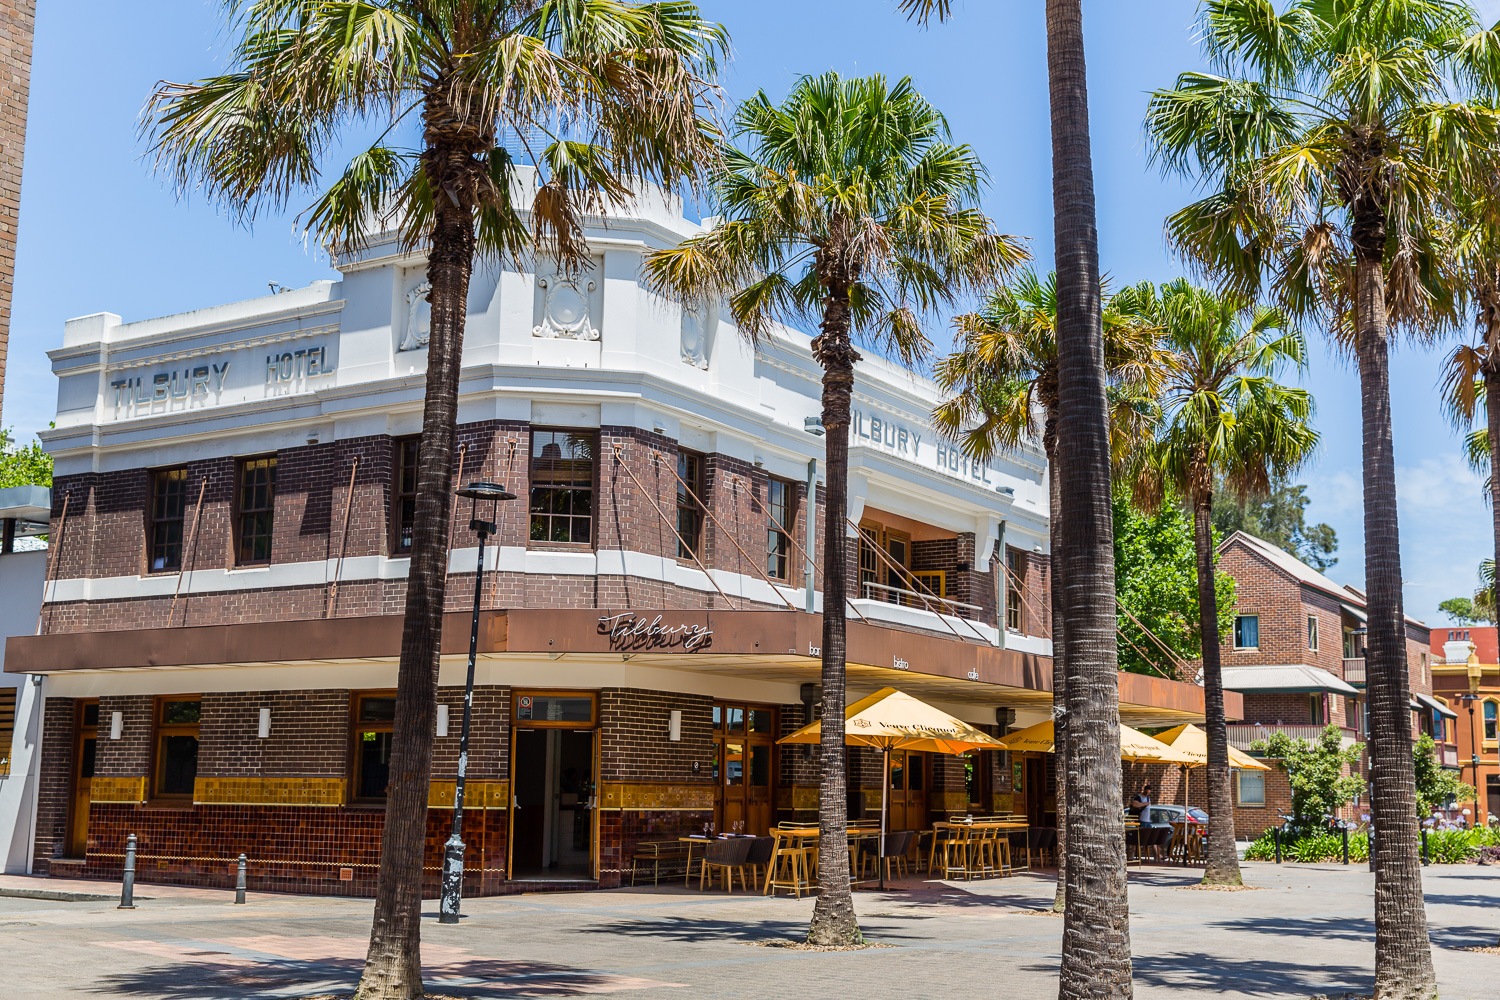 The Tilbury Hotel - Tourism Adelaide